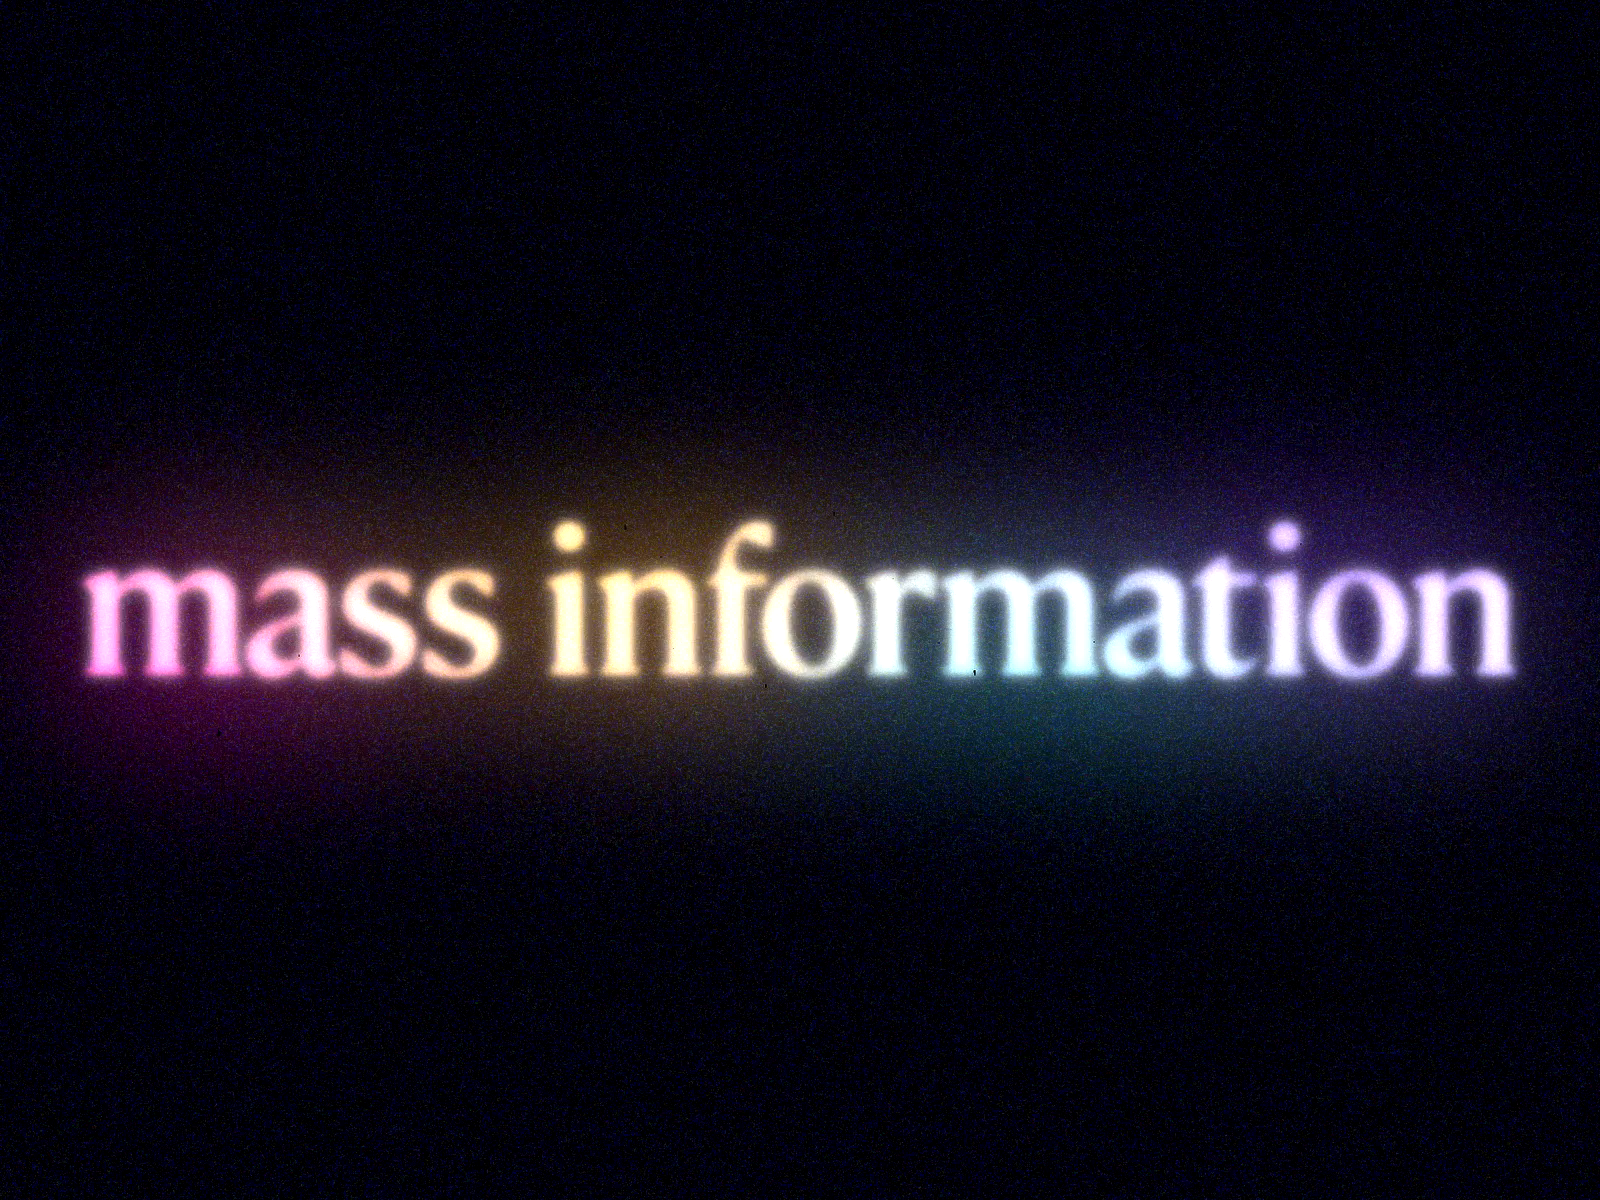 Mass information  → Misinformation